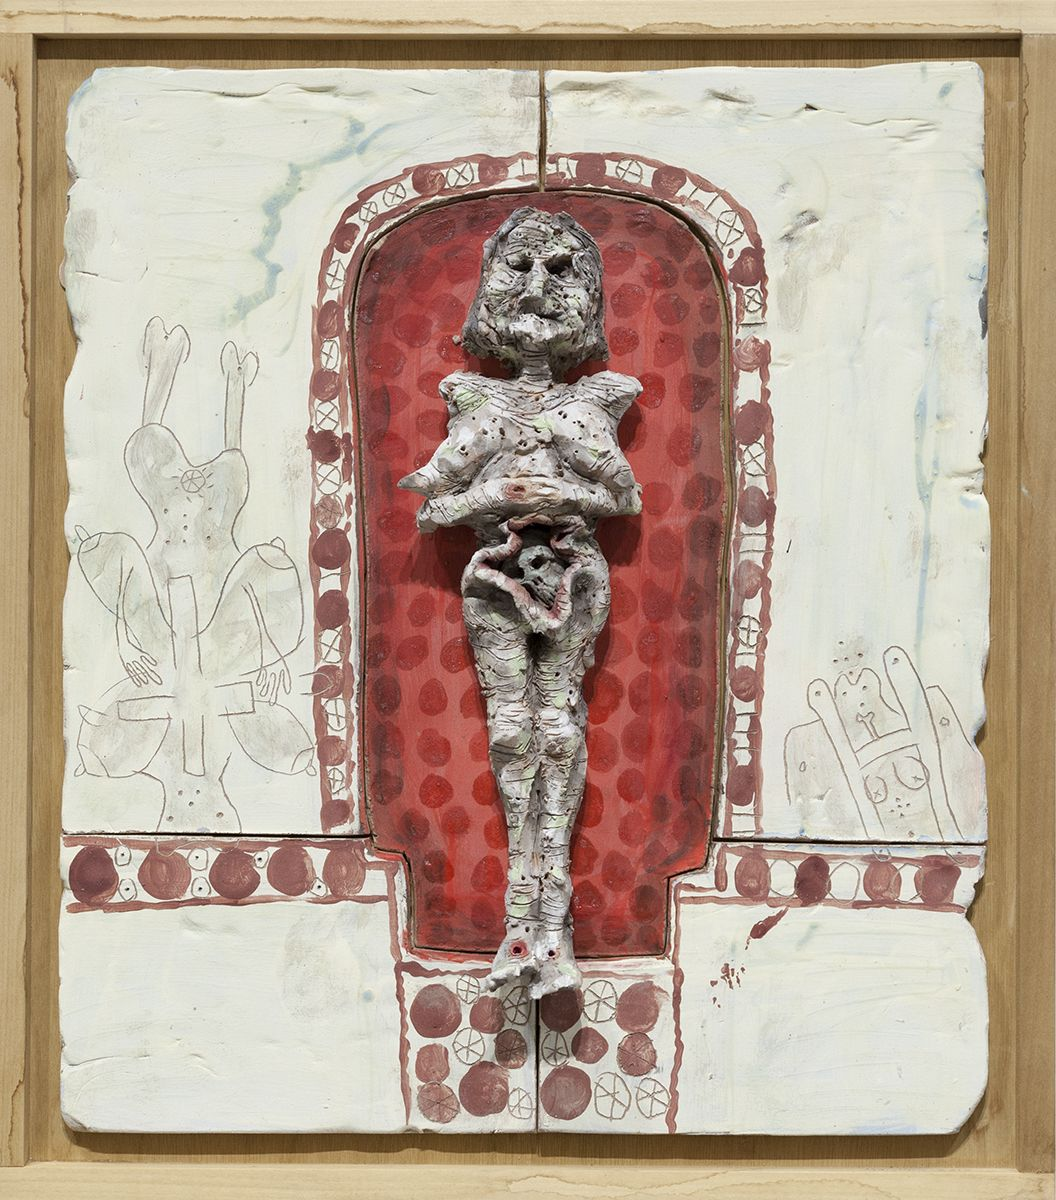 Richard Hawkins  Norogachian Prostitute Priestess of the Sun, 2016  Glazed ceramic in artist's frame   25 3/4 x 22 3/4 x 3 1/2 inches (65.4 x 57.8 x 8.9 cm)